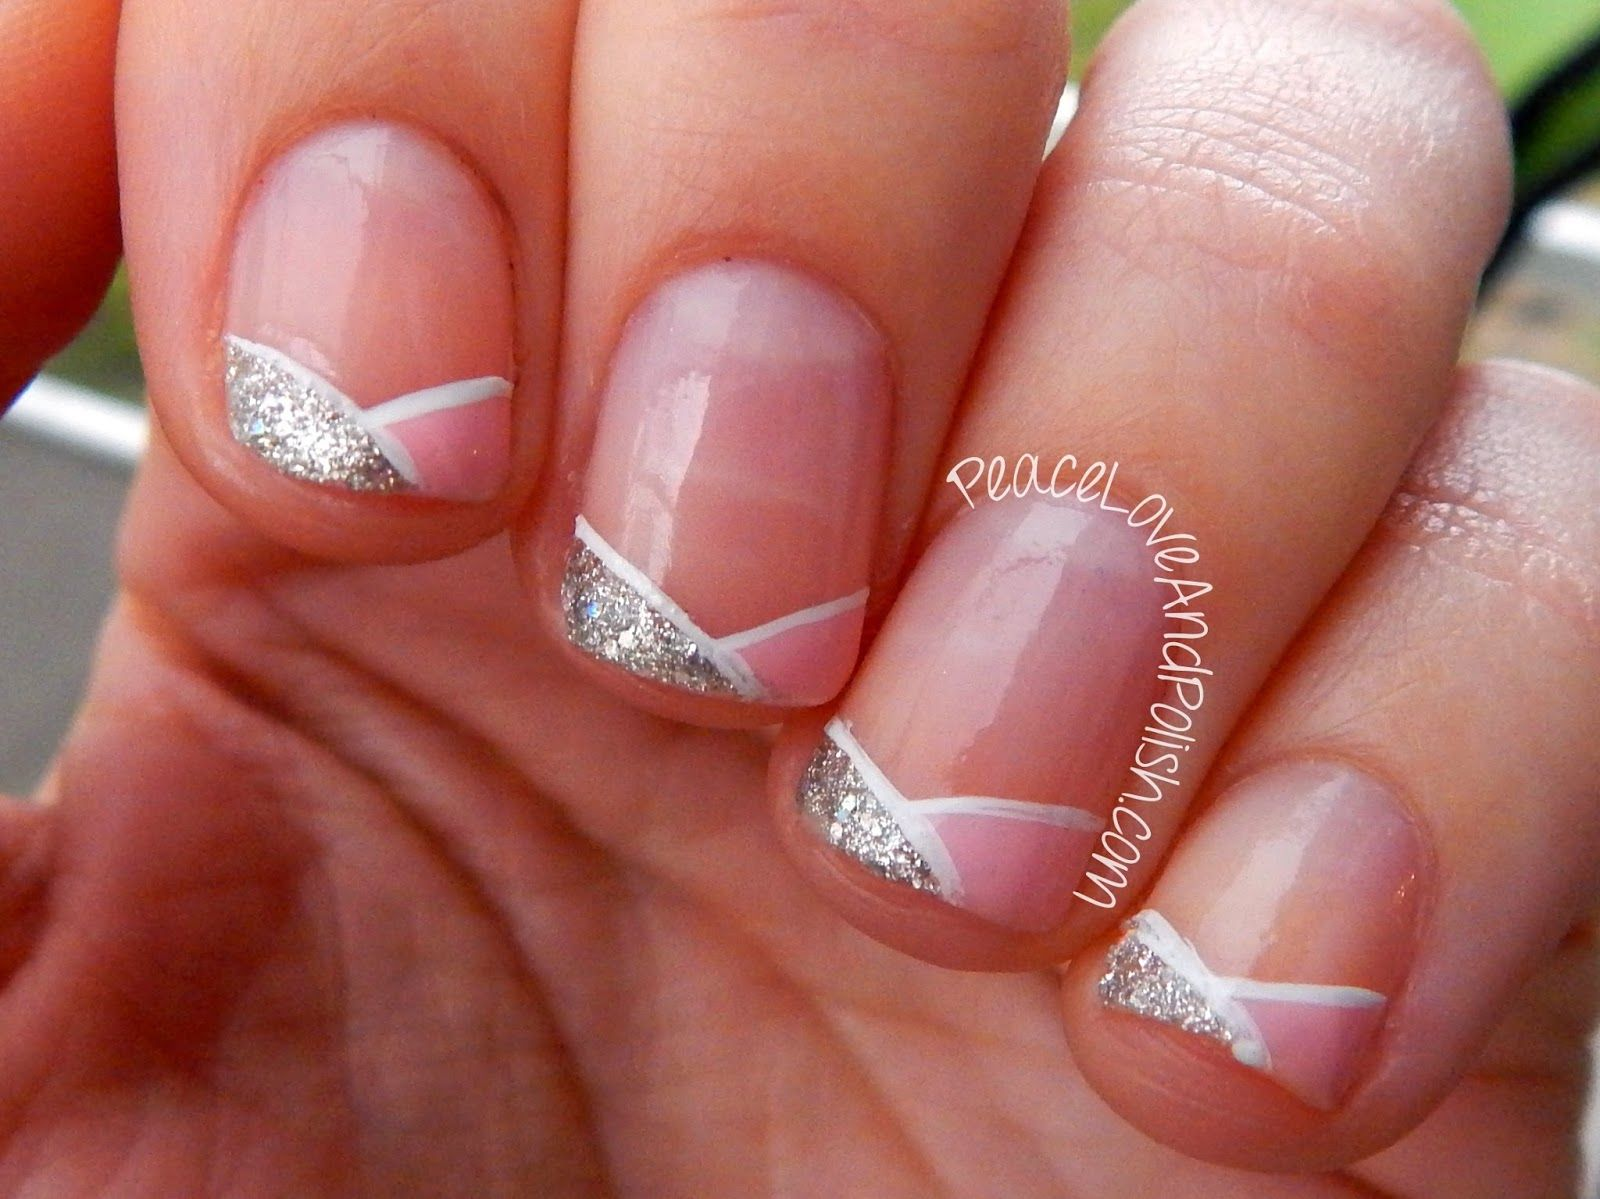 French tip nail art super easy pink and glitter french tip french tip nail art super easy pink and glitter french tip prinsesfo Images